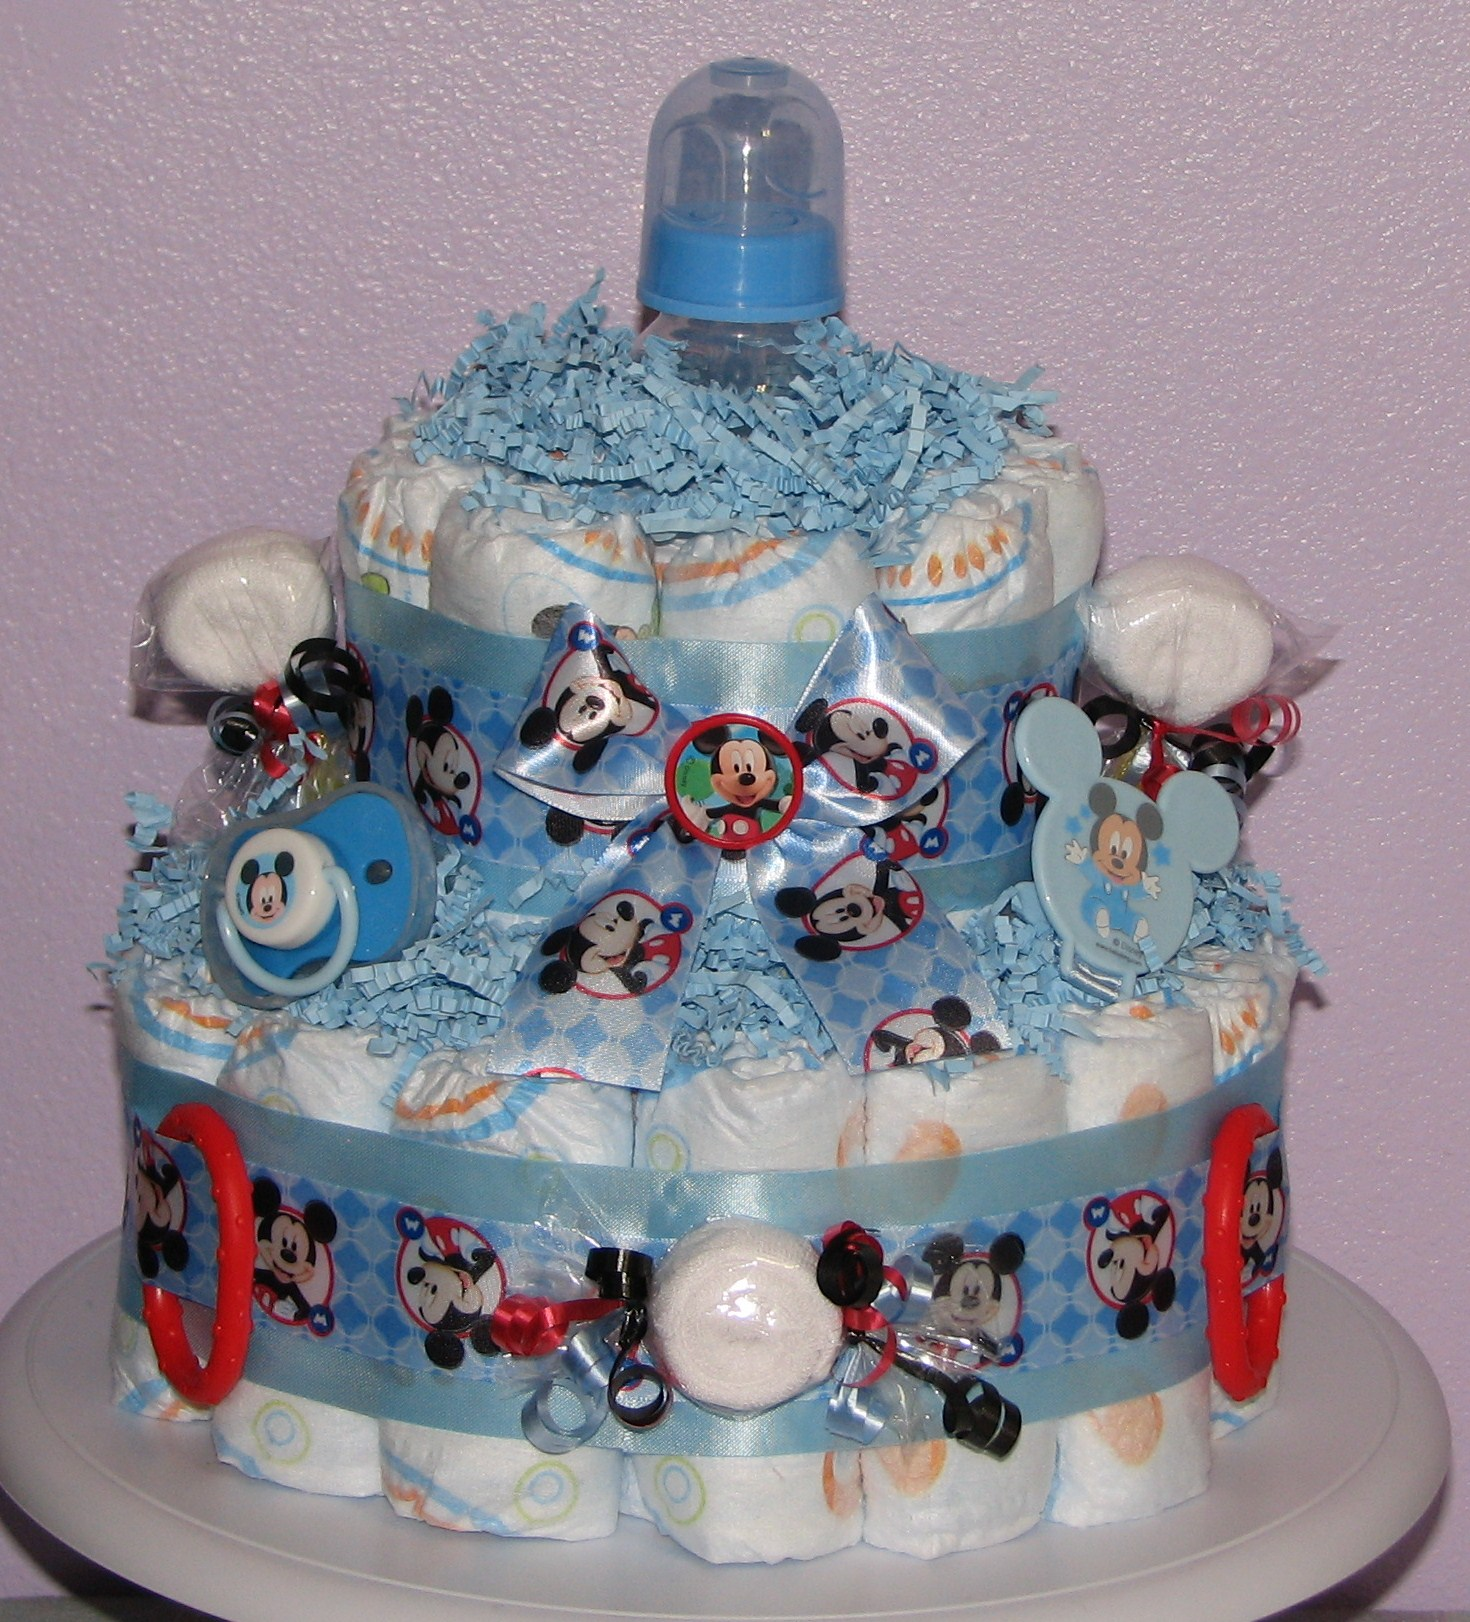 Mickey-Mouse-Diaper-Cake.JPG - Mickey Mouse Diaper Cake